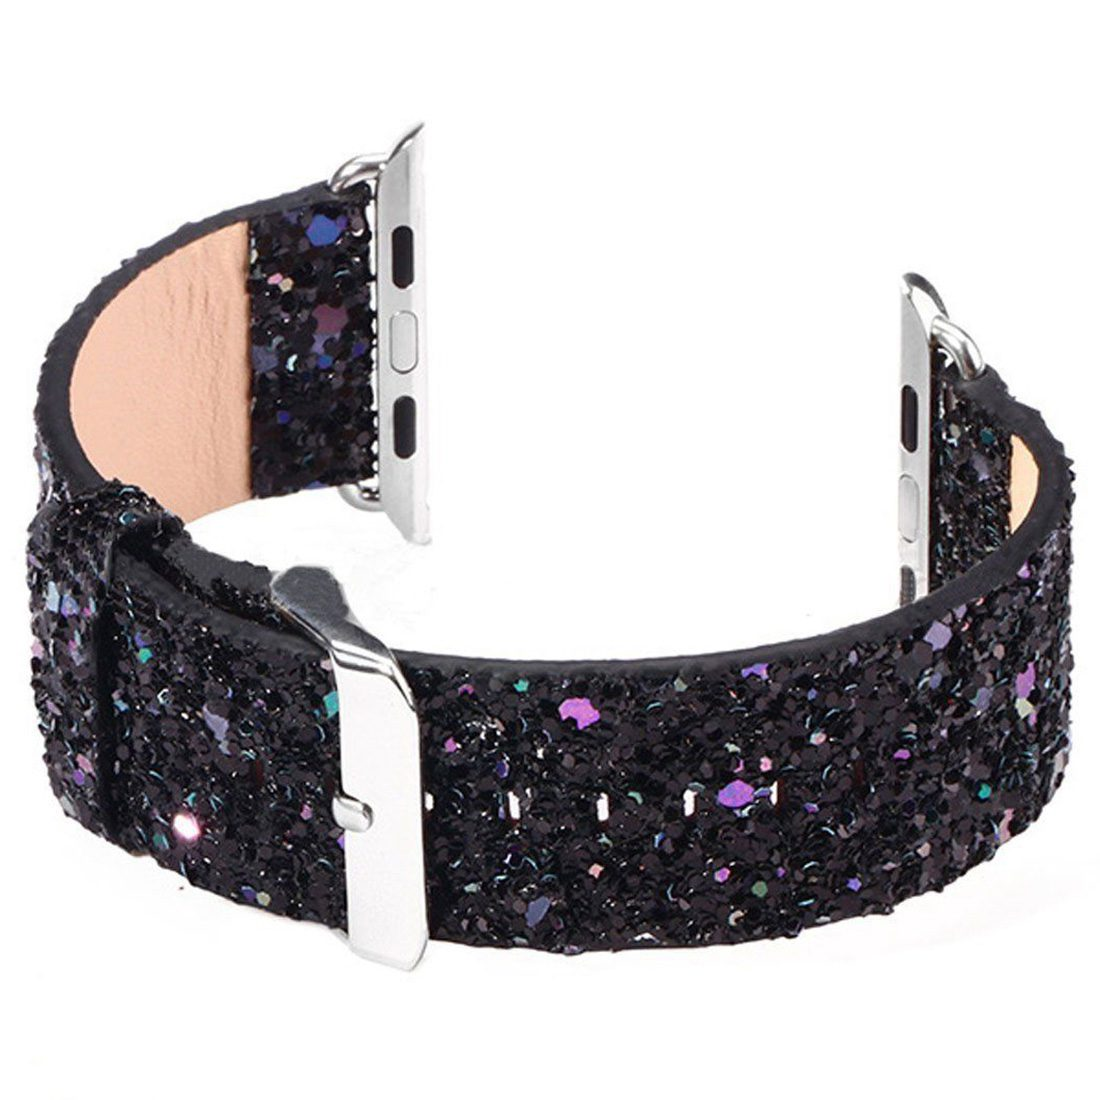 Bling Glitter Leather Watch Clasp Loop Band Strap for Apple Watch 38mm Black tempered glass for samsung galaxy note 10 1 n8000 n8010 tablet screen protector film premium for samsung note 800 glass film 9h